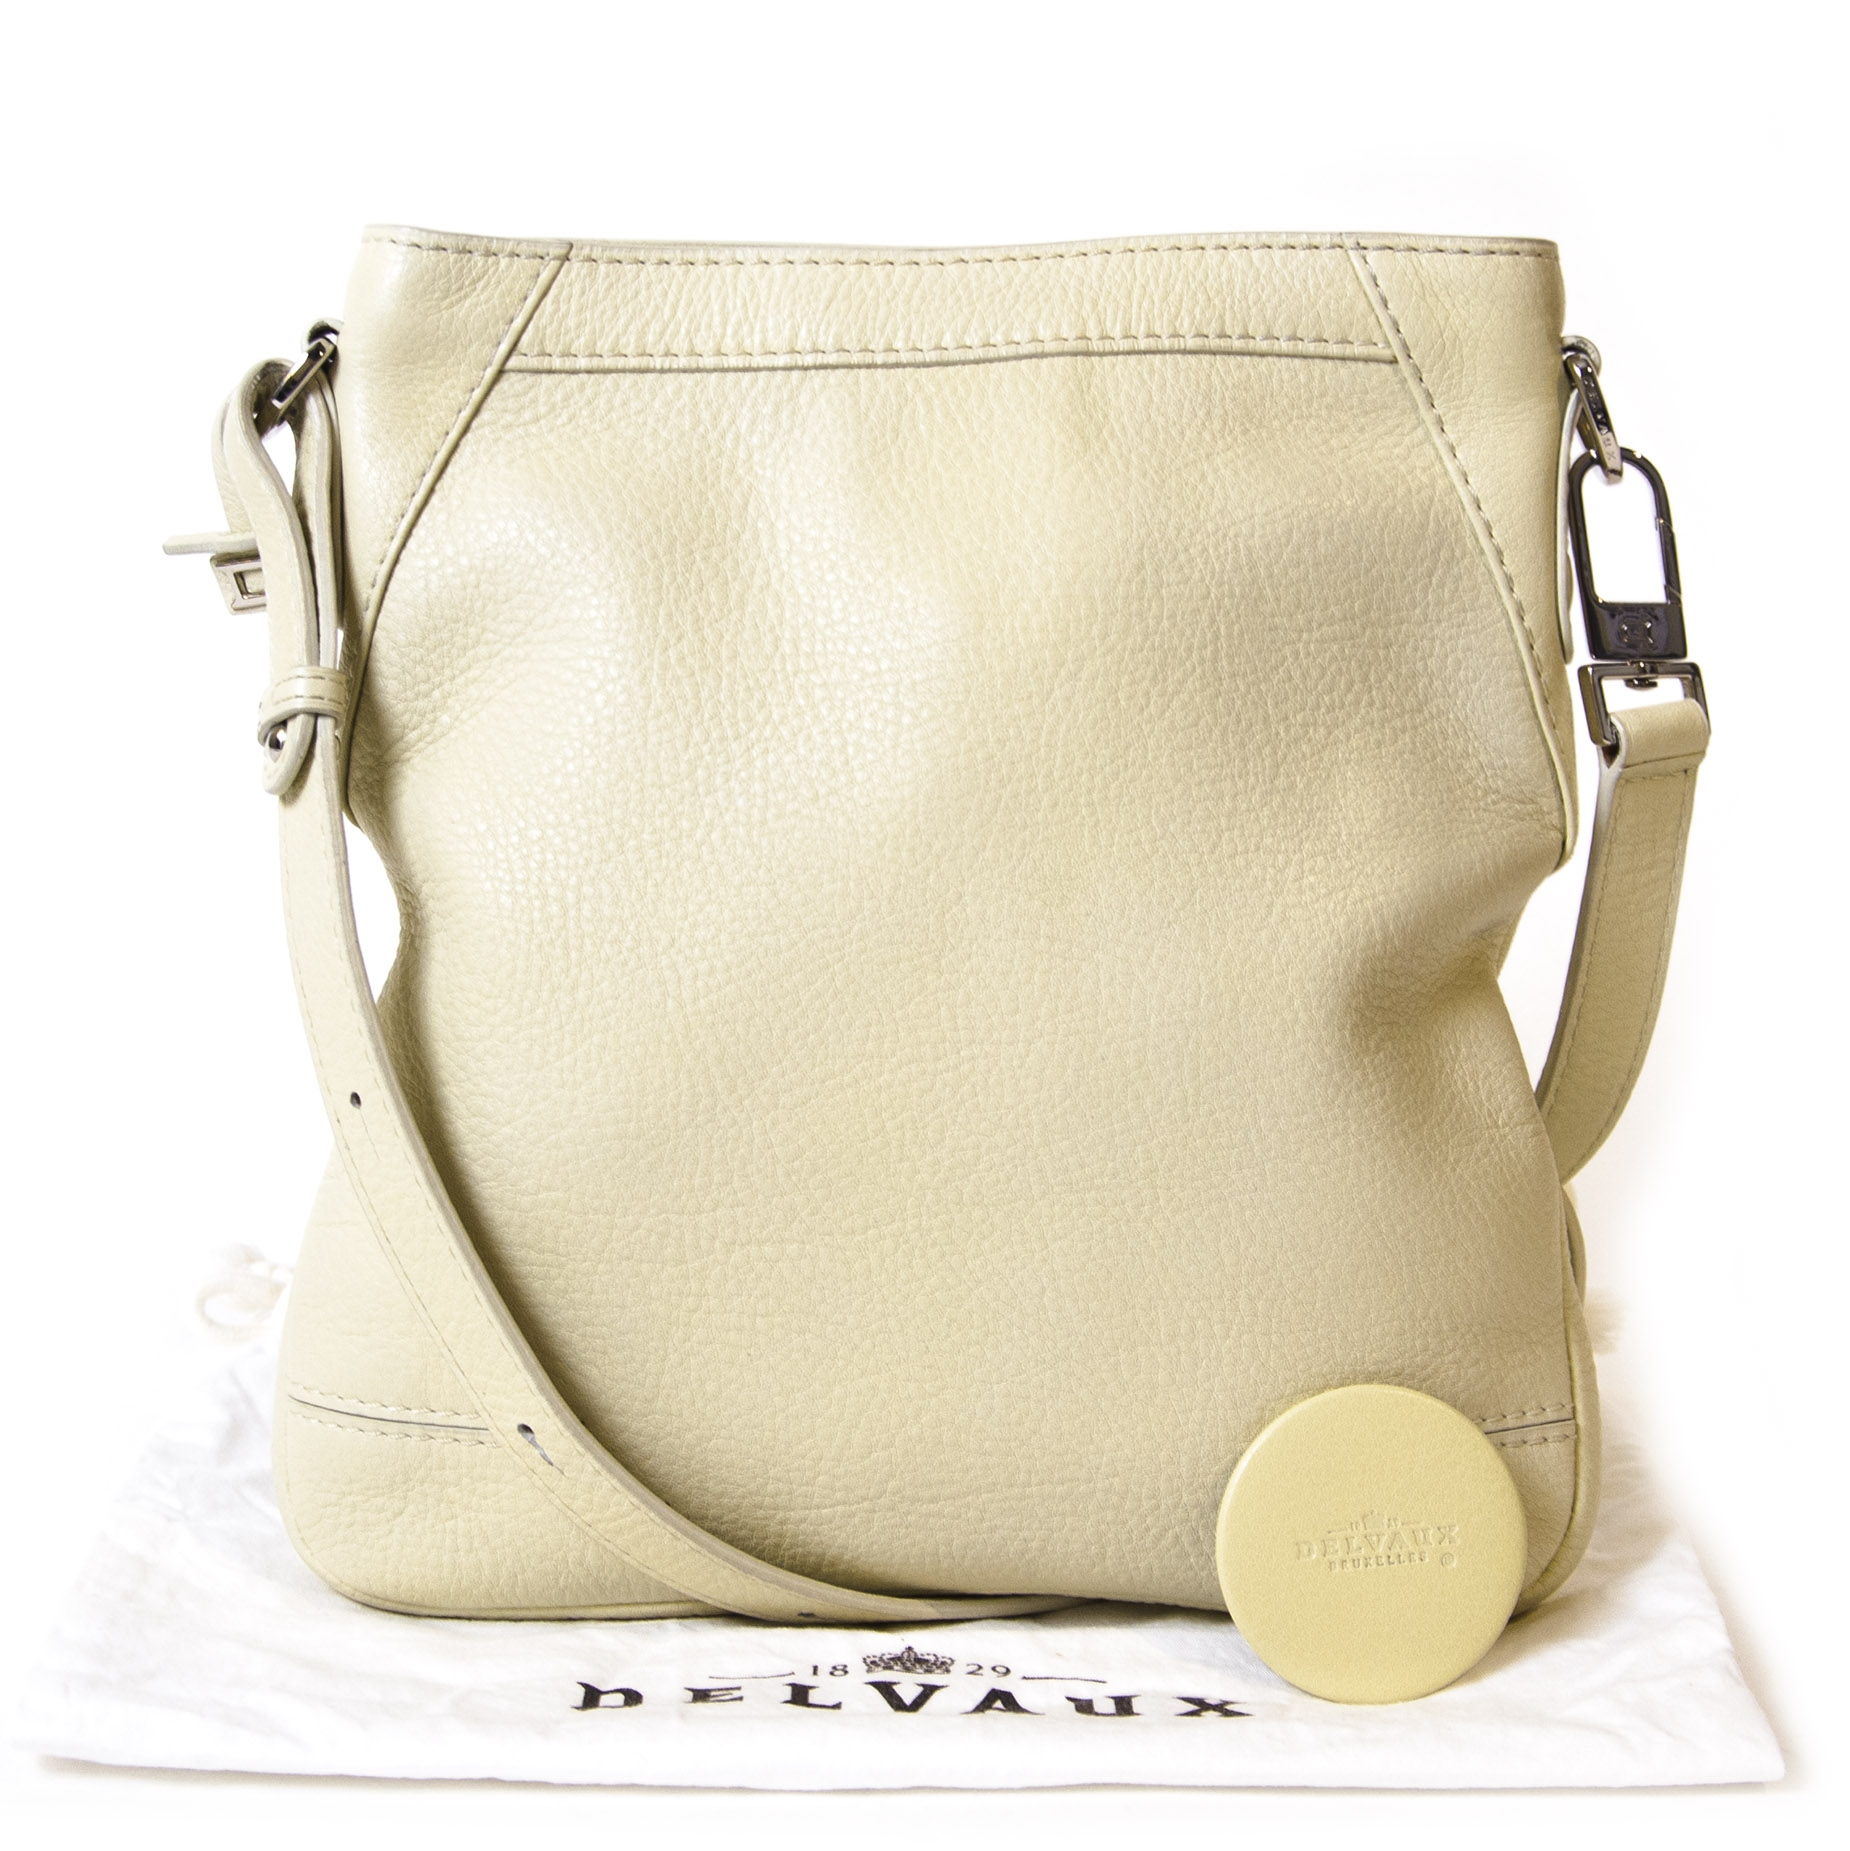 Delvaux Mint Green Crossbody Bag